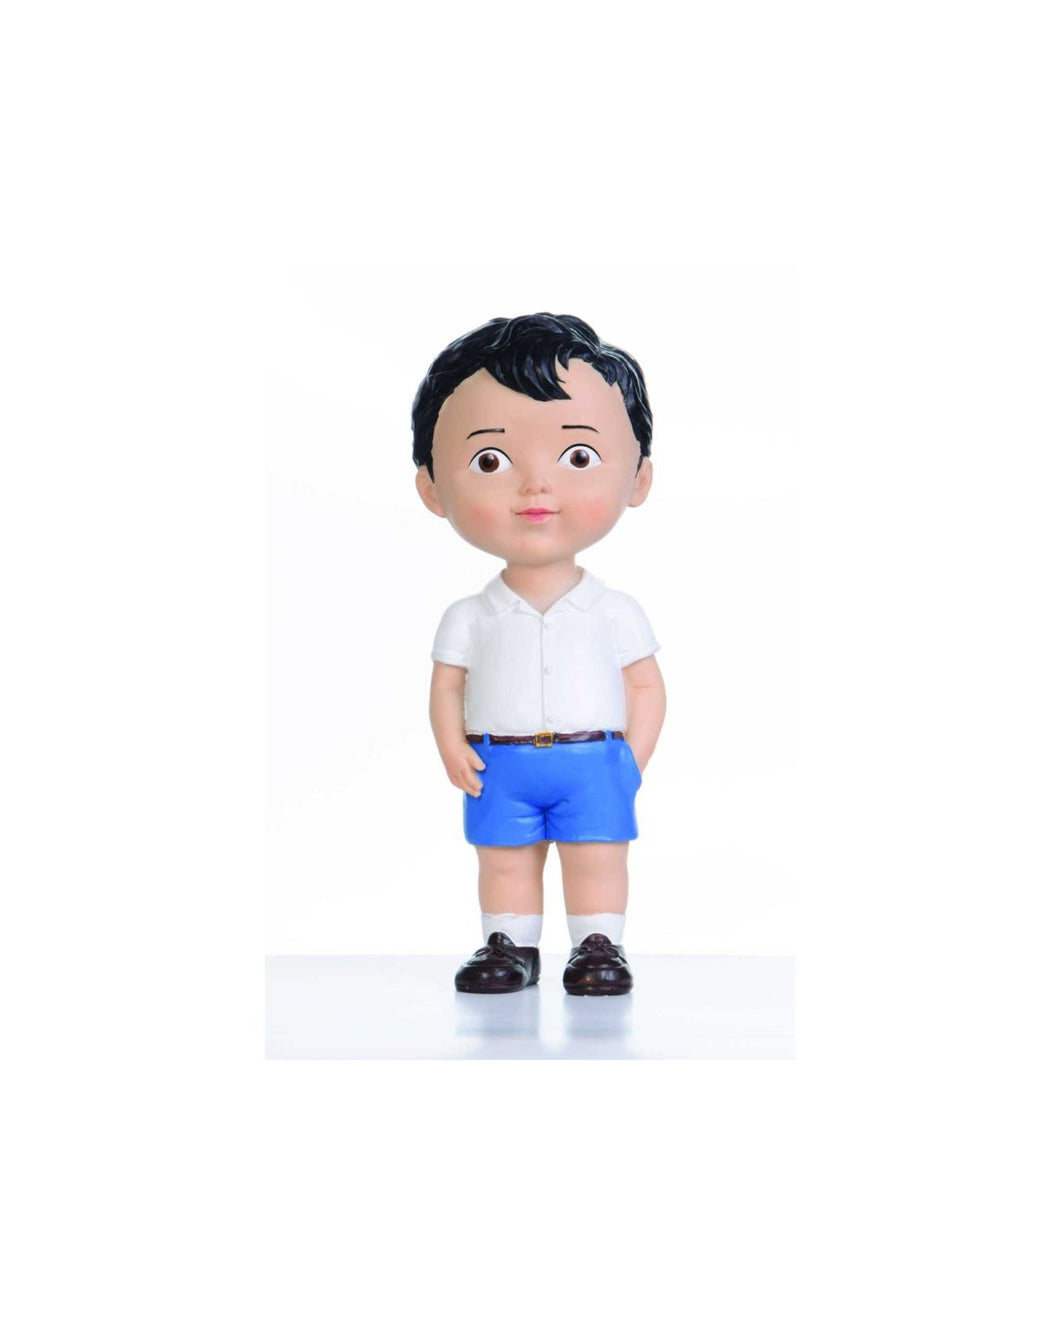 Black Hair Boy Doll